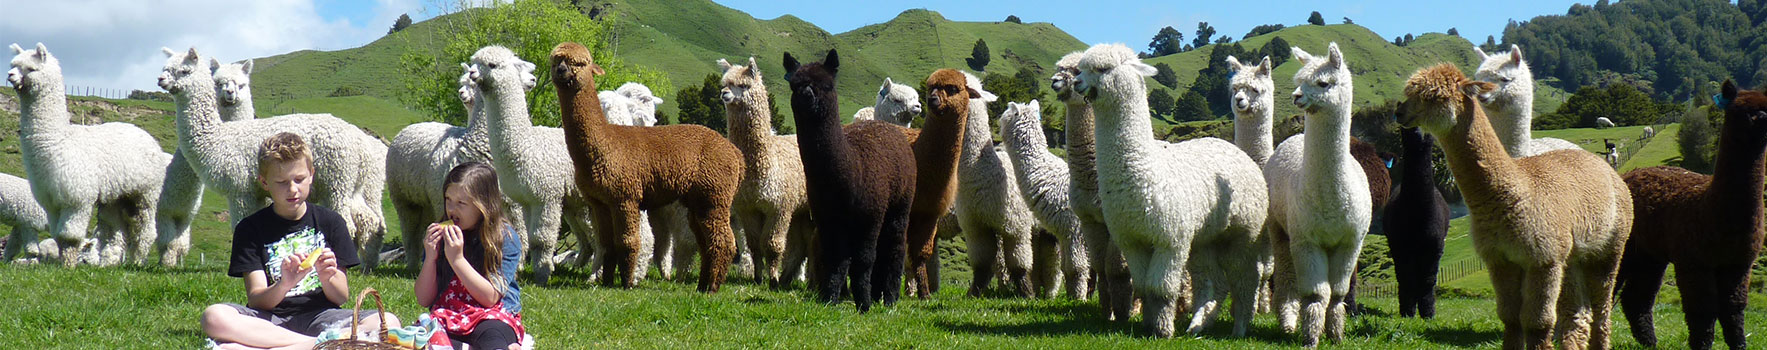 Enjoying-an-Alpaca-Picnic